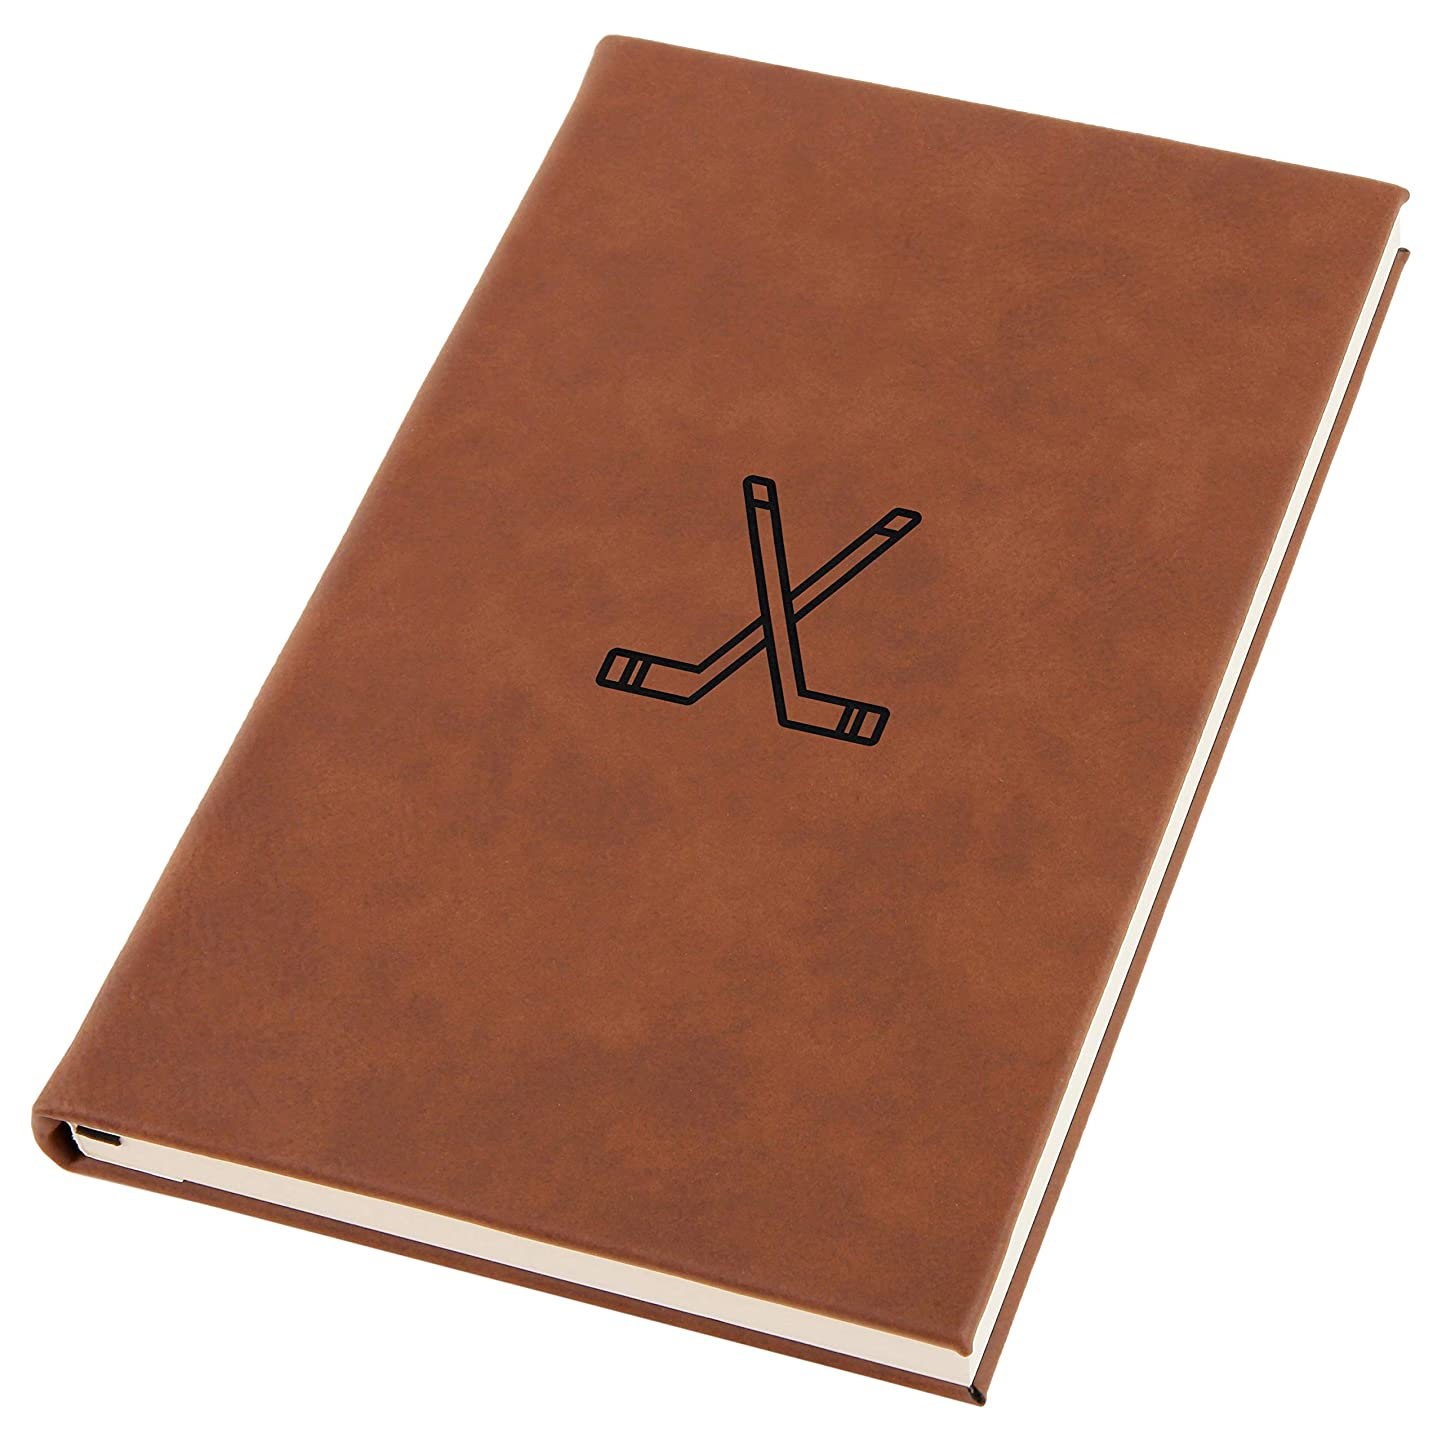 Hockey Sticks Engraved A5 Leather Journal, Notebook, Personal Diary hipjoswzivy8